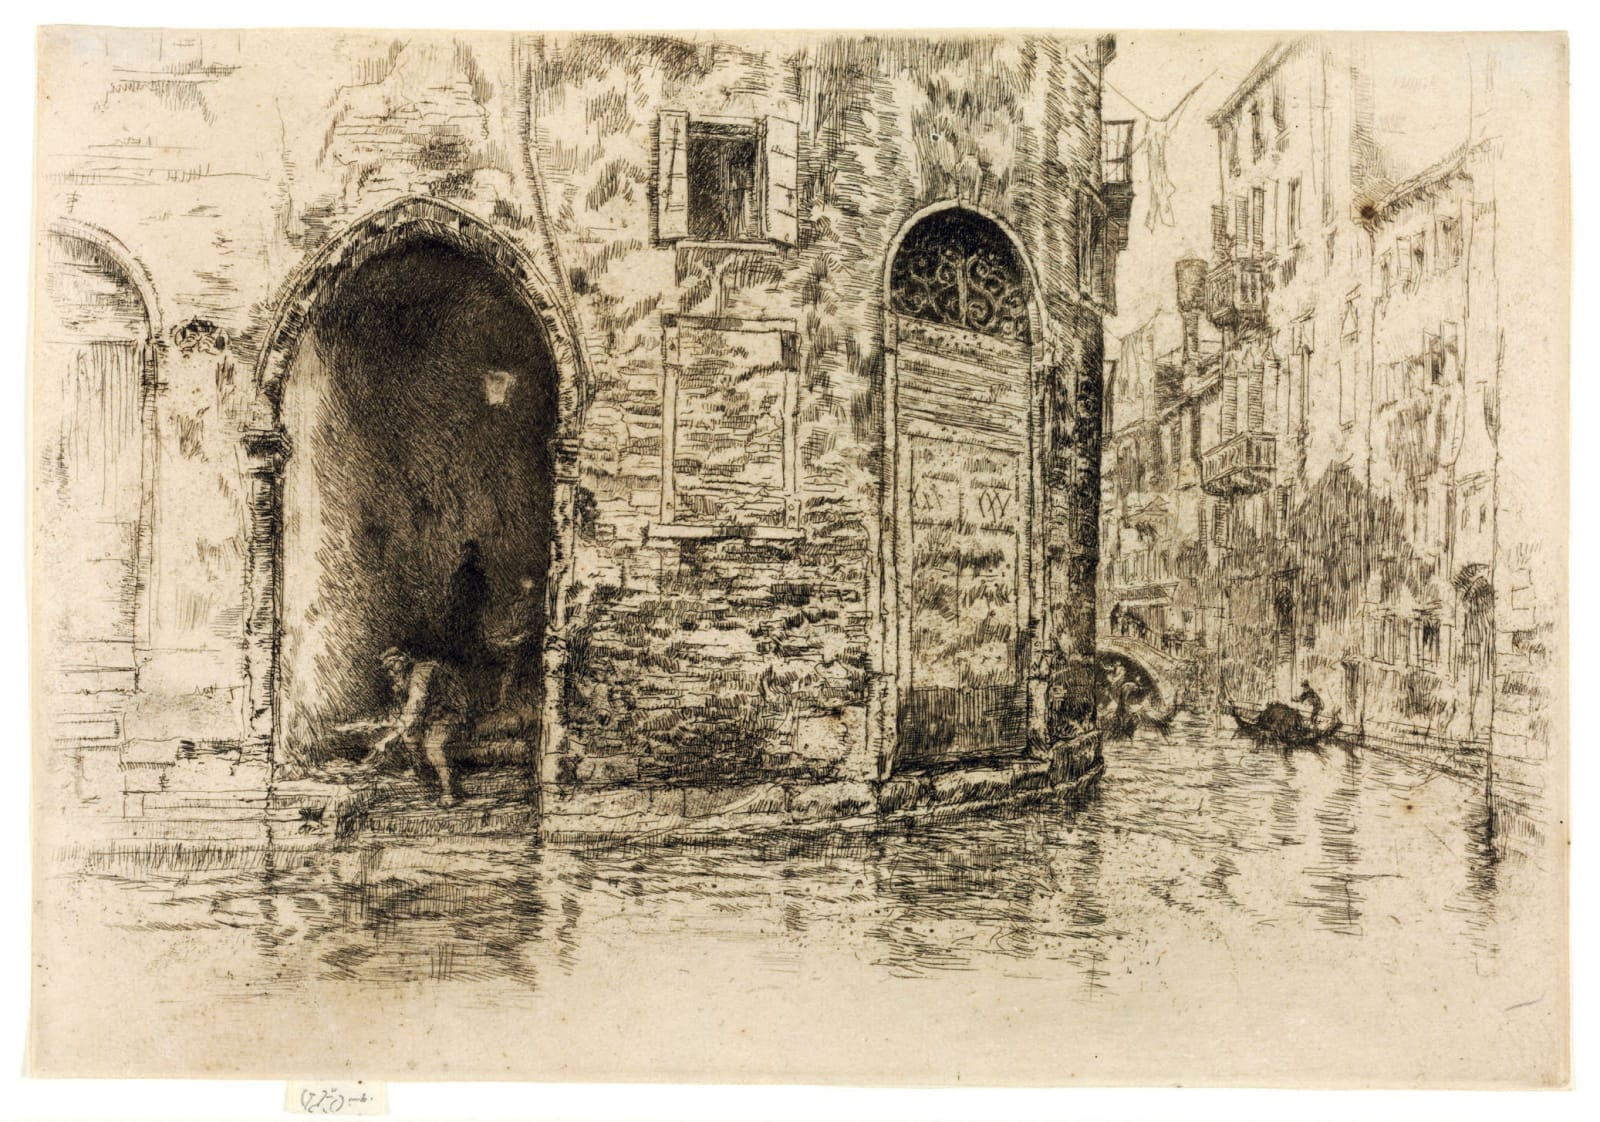 James Abbott McNeill Whistler, The Two Doorways, from Twelve Etchings, 1879-80 Etching